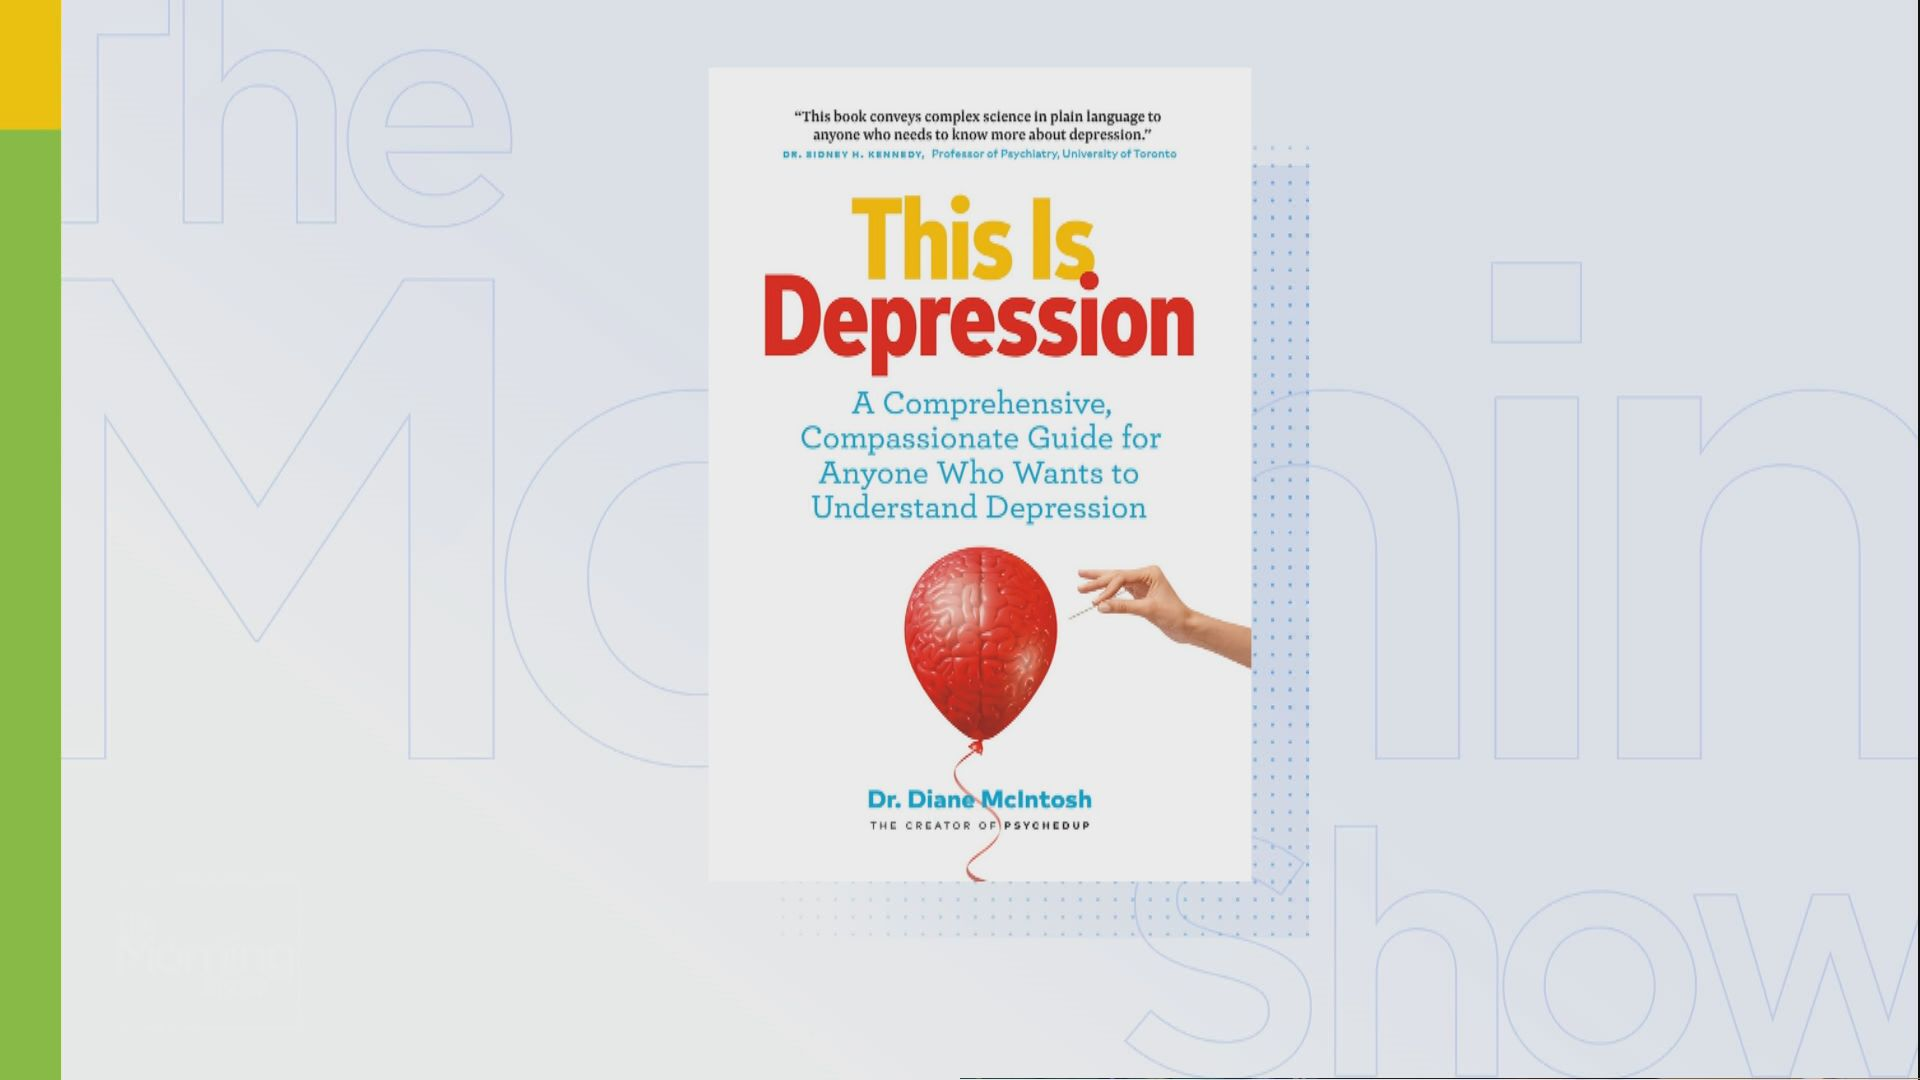 Helping others deal with depression